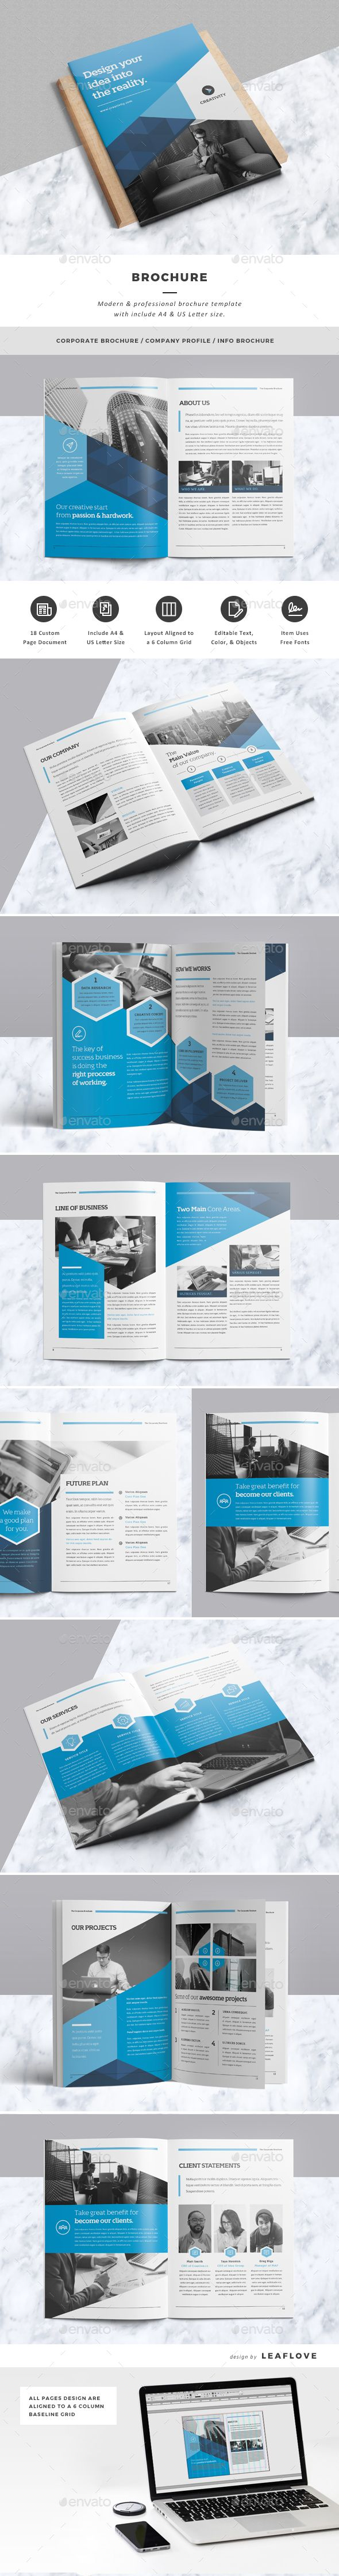 Corporate Brochure Design Template - Corporate Brochure Template InDesign INDD. Download here: https://graphicriver.net/item/brochure/17363666?ref=yinkira